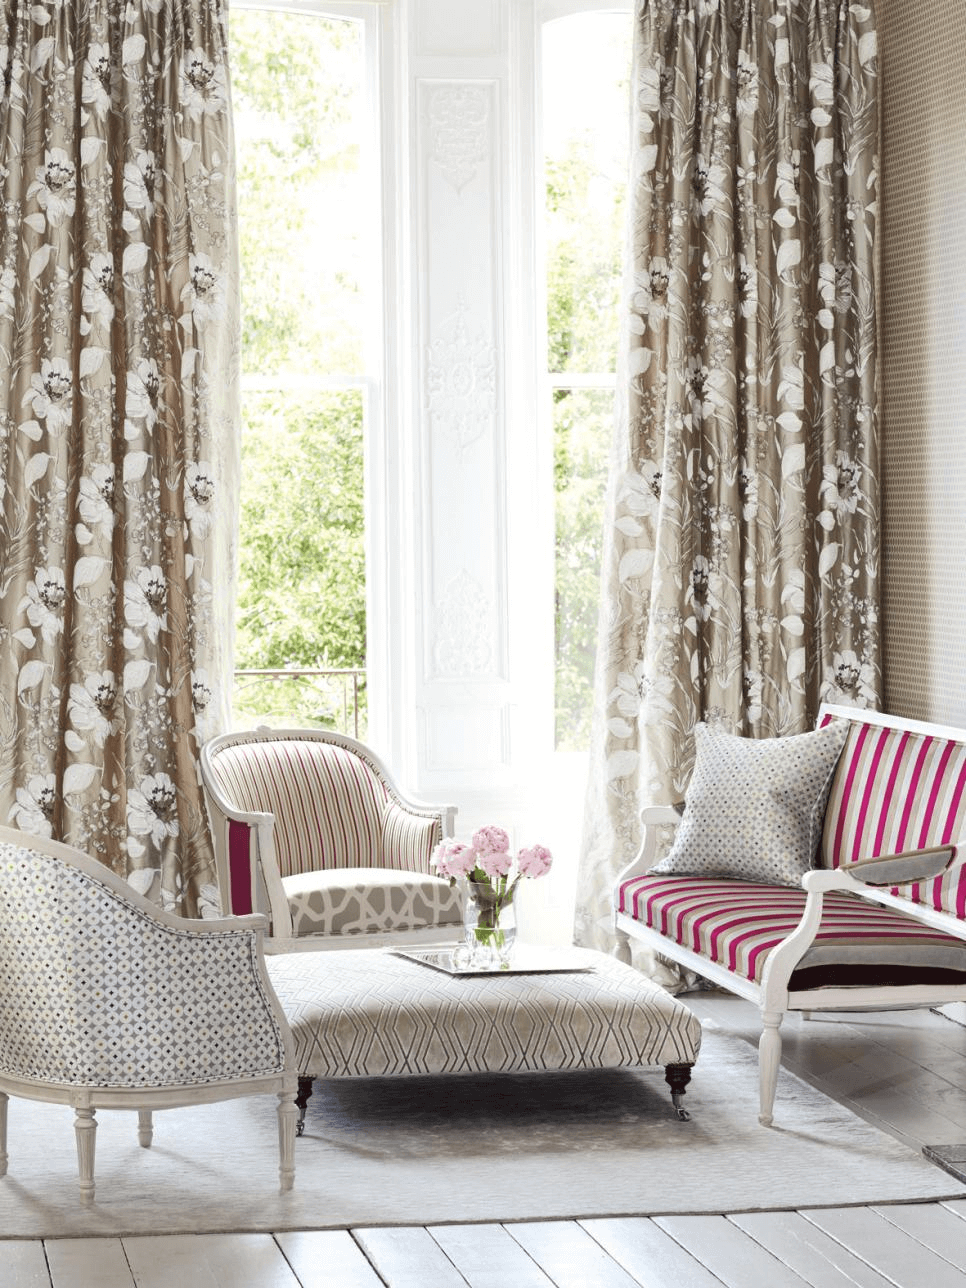 Patterned Curtains for modern living room design ideas